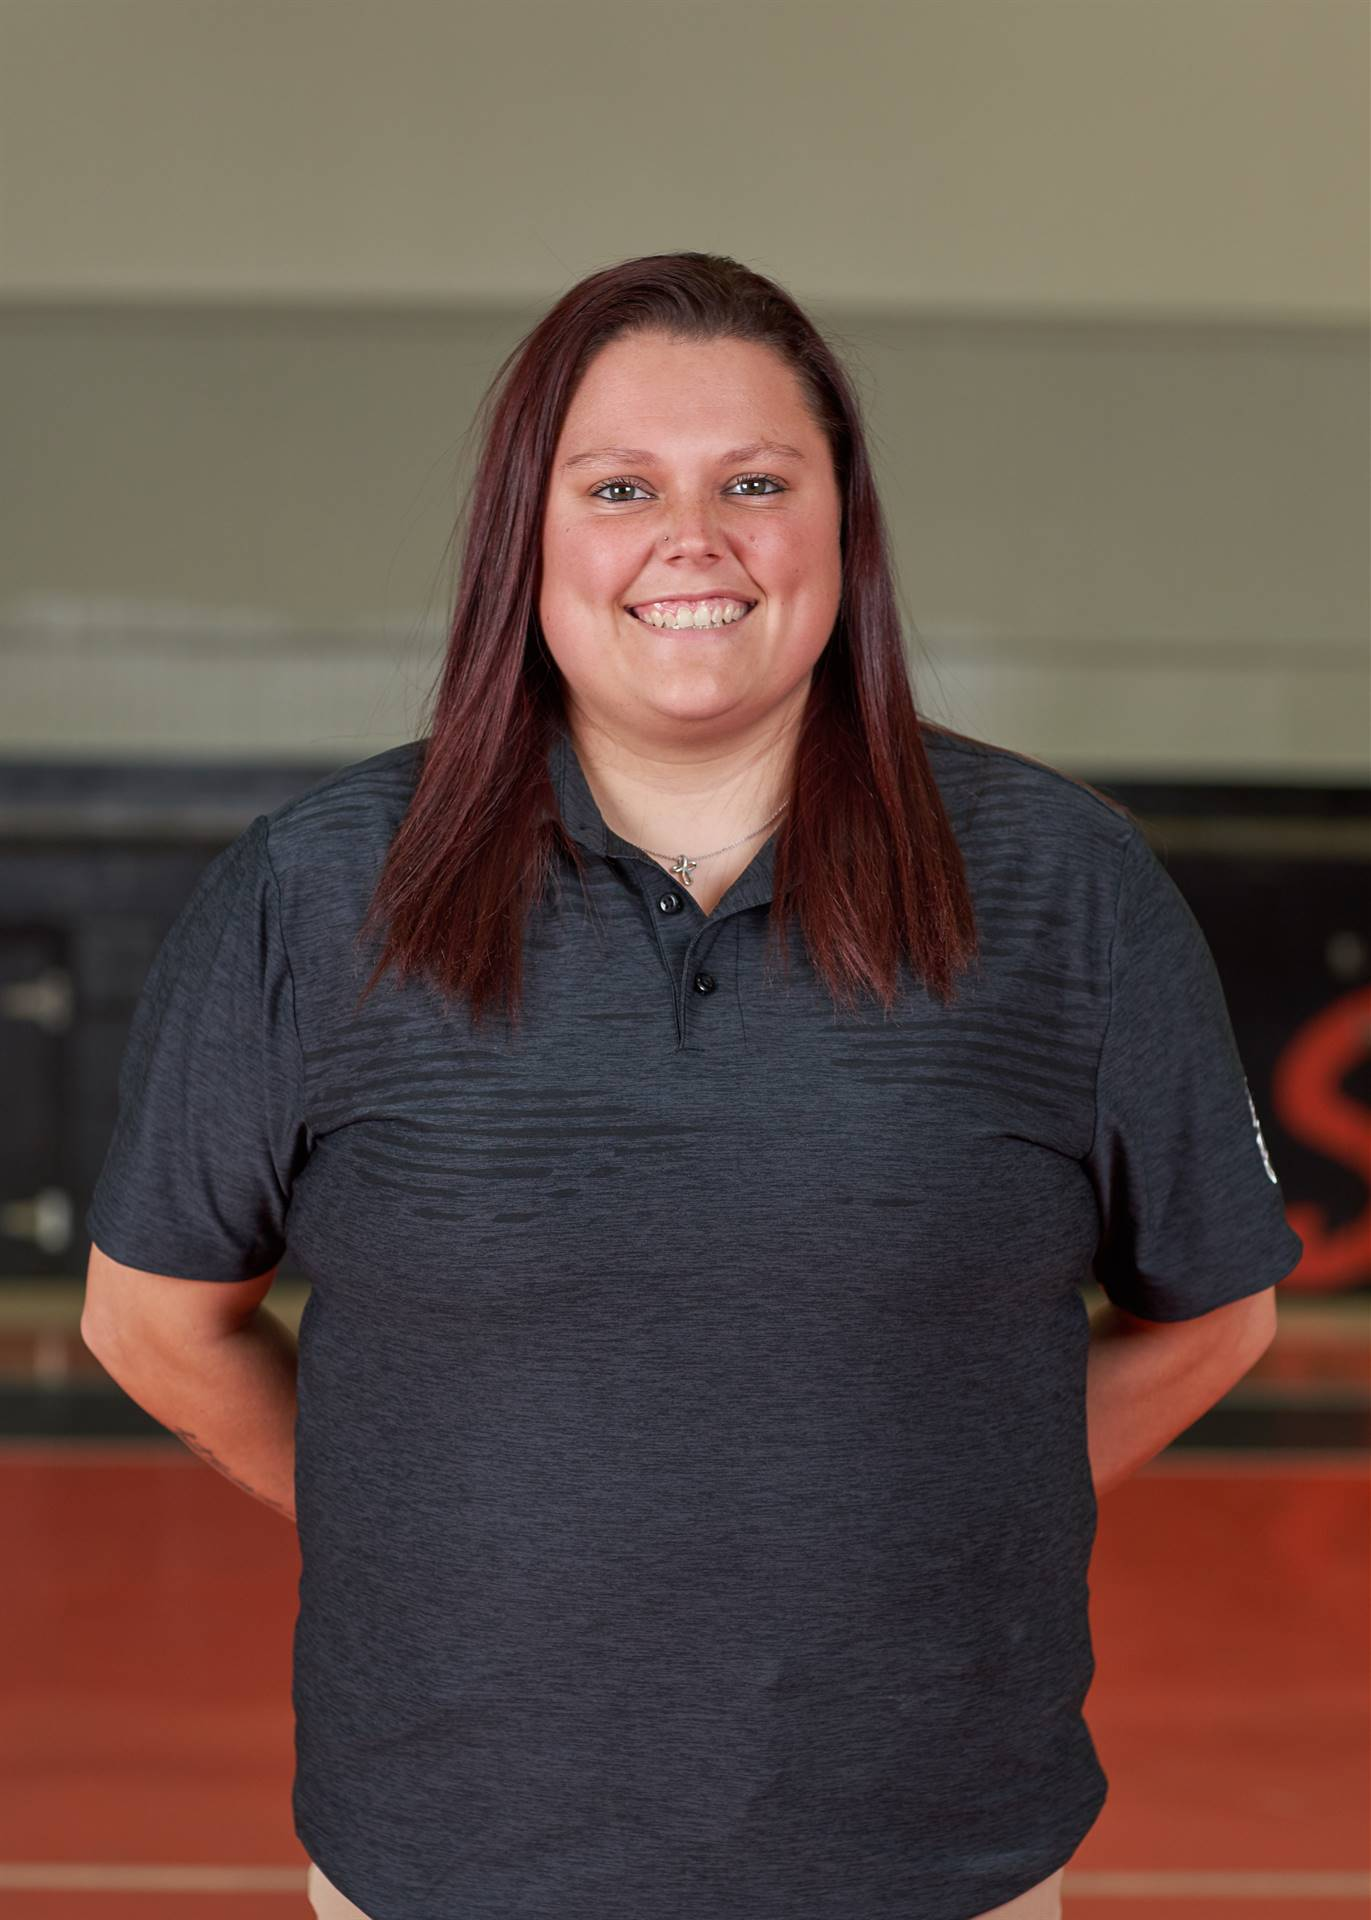 7th Girls Basketball Coach - Stefaniee Power